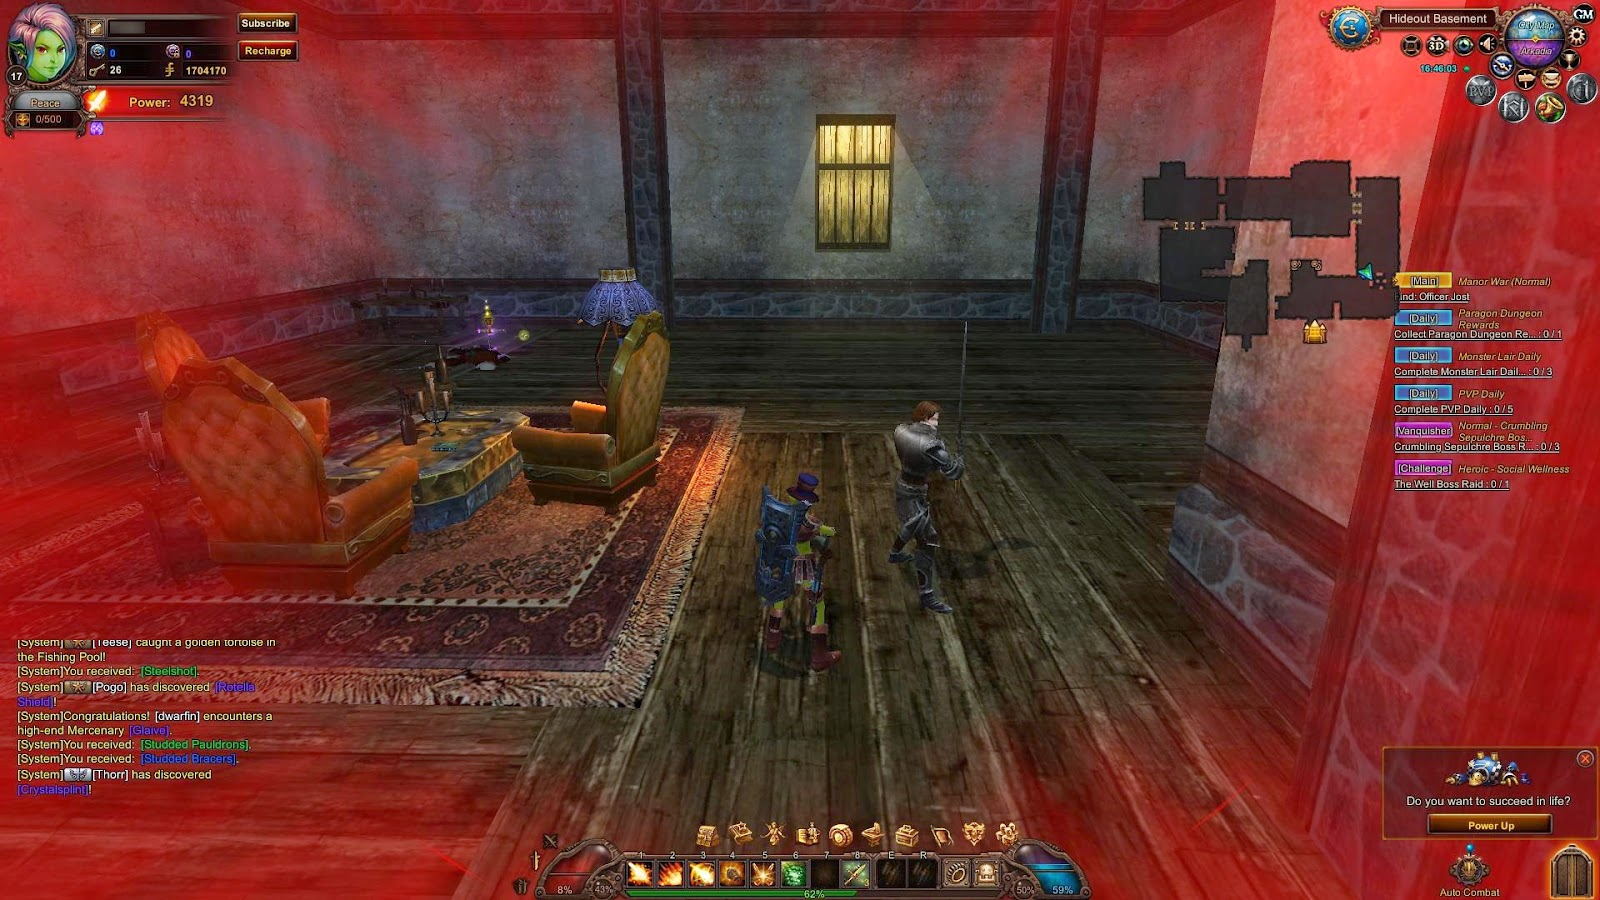 Inventory Full: Look Through Any Window : GW2, CoS, Everquest